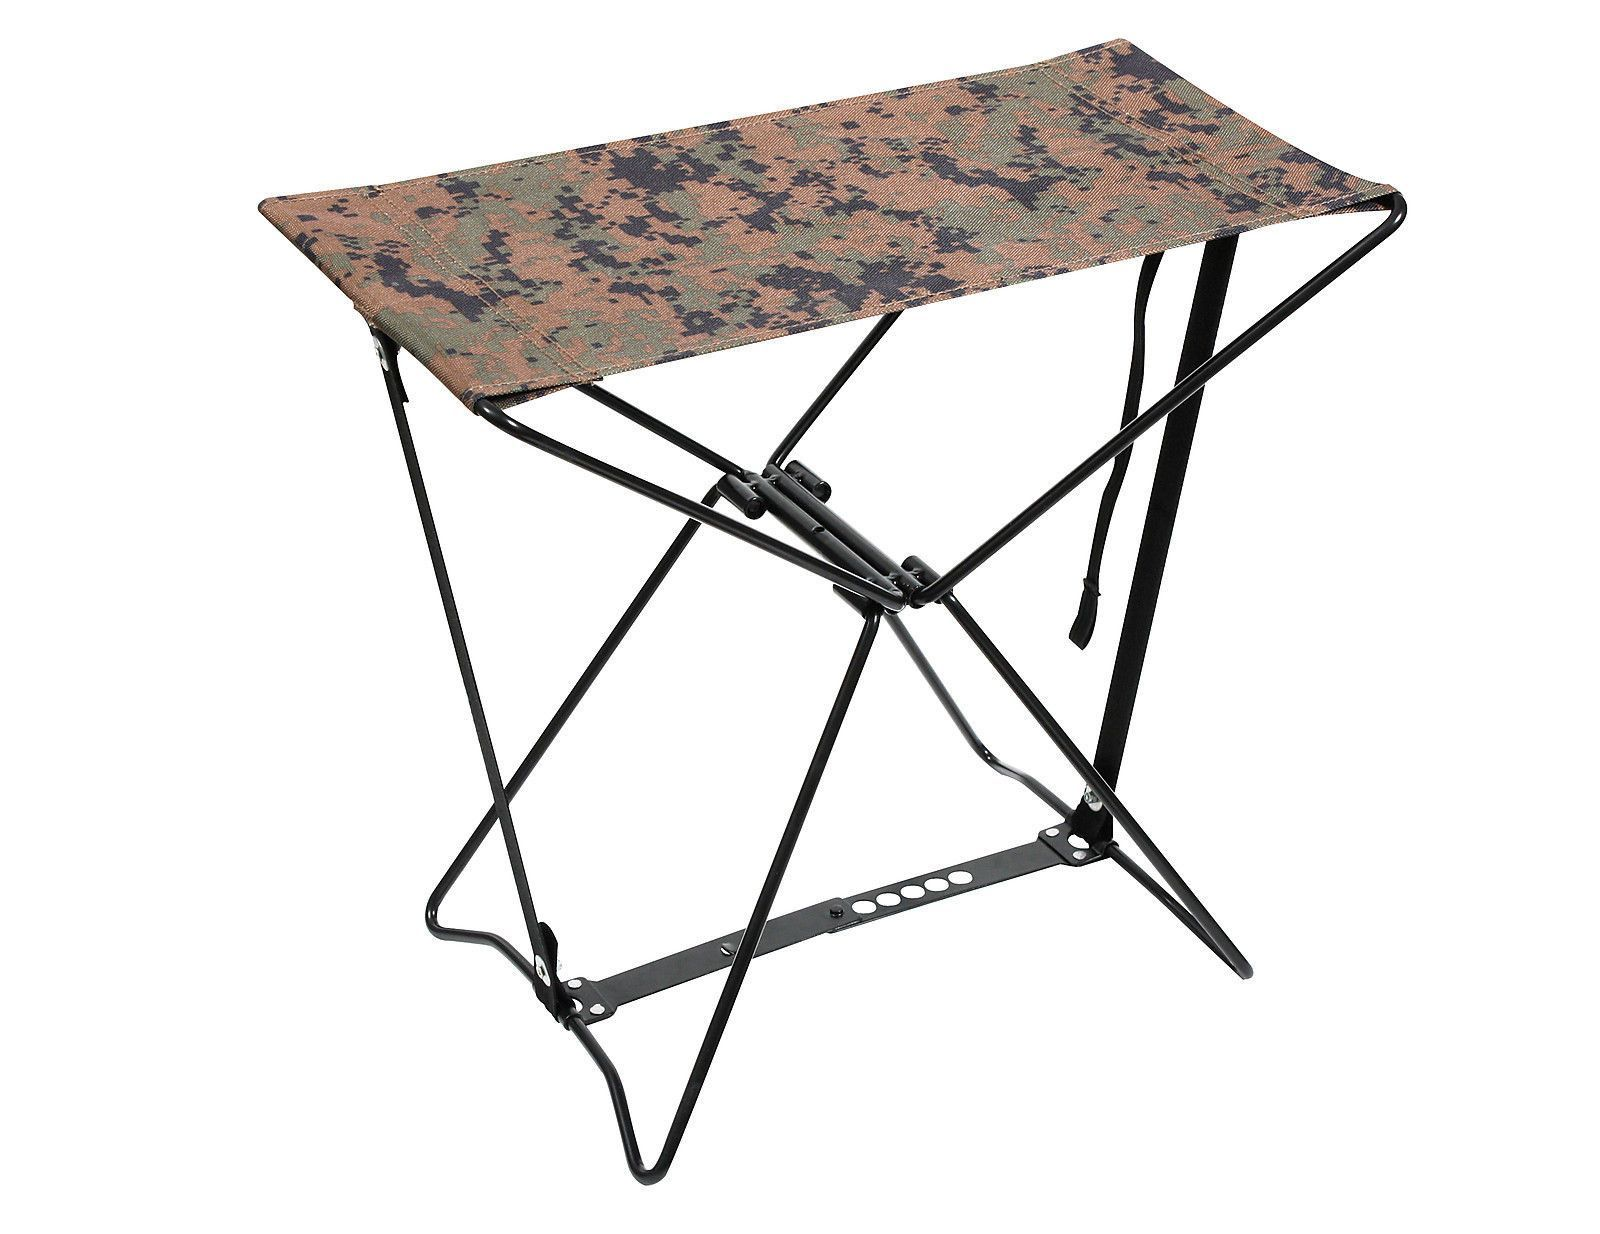 Folding Camping Stools Camouflage Hiking Chair Foldable Outdoor